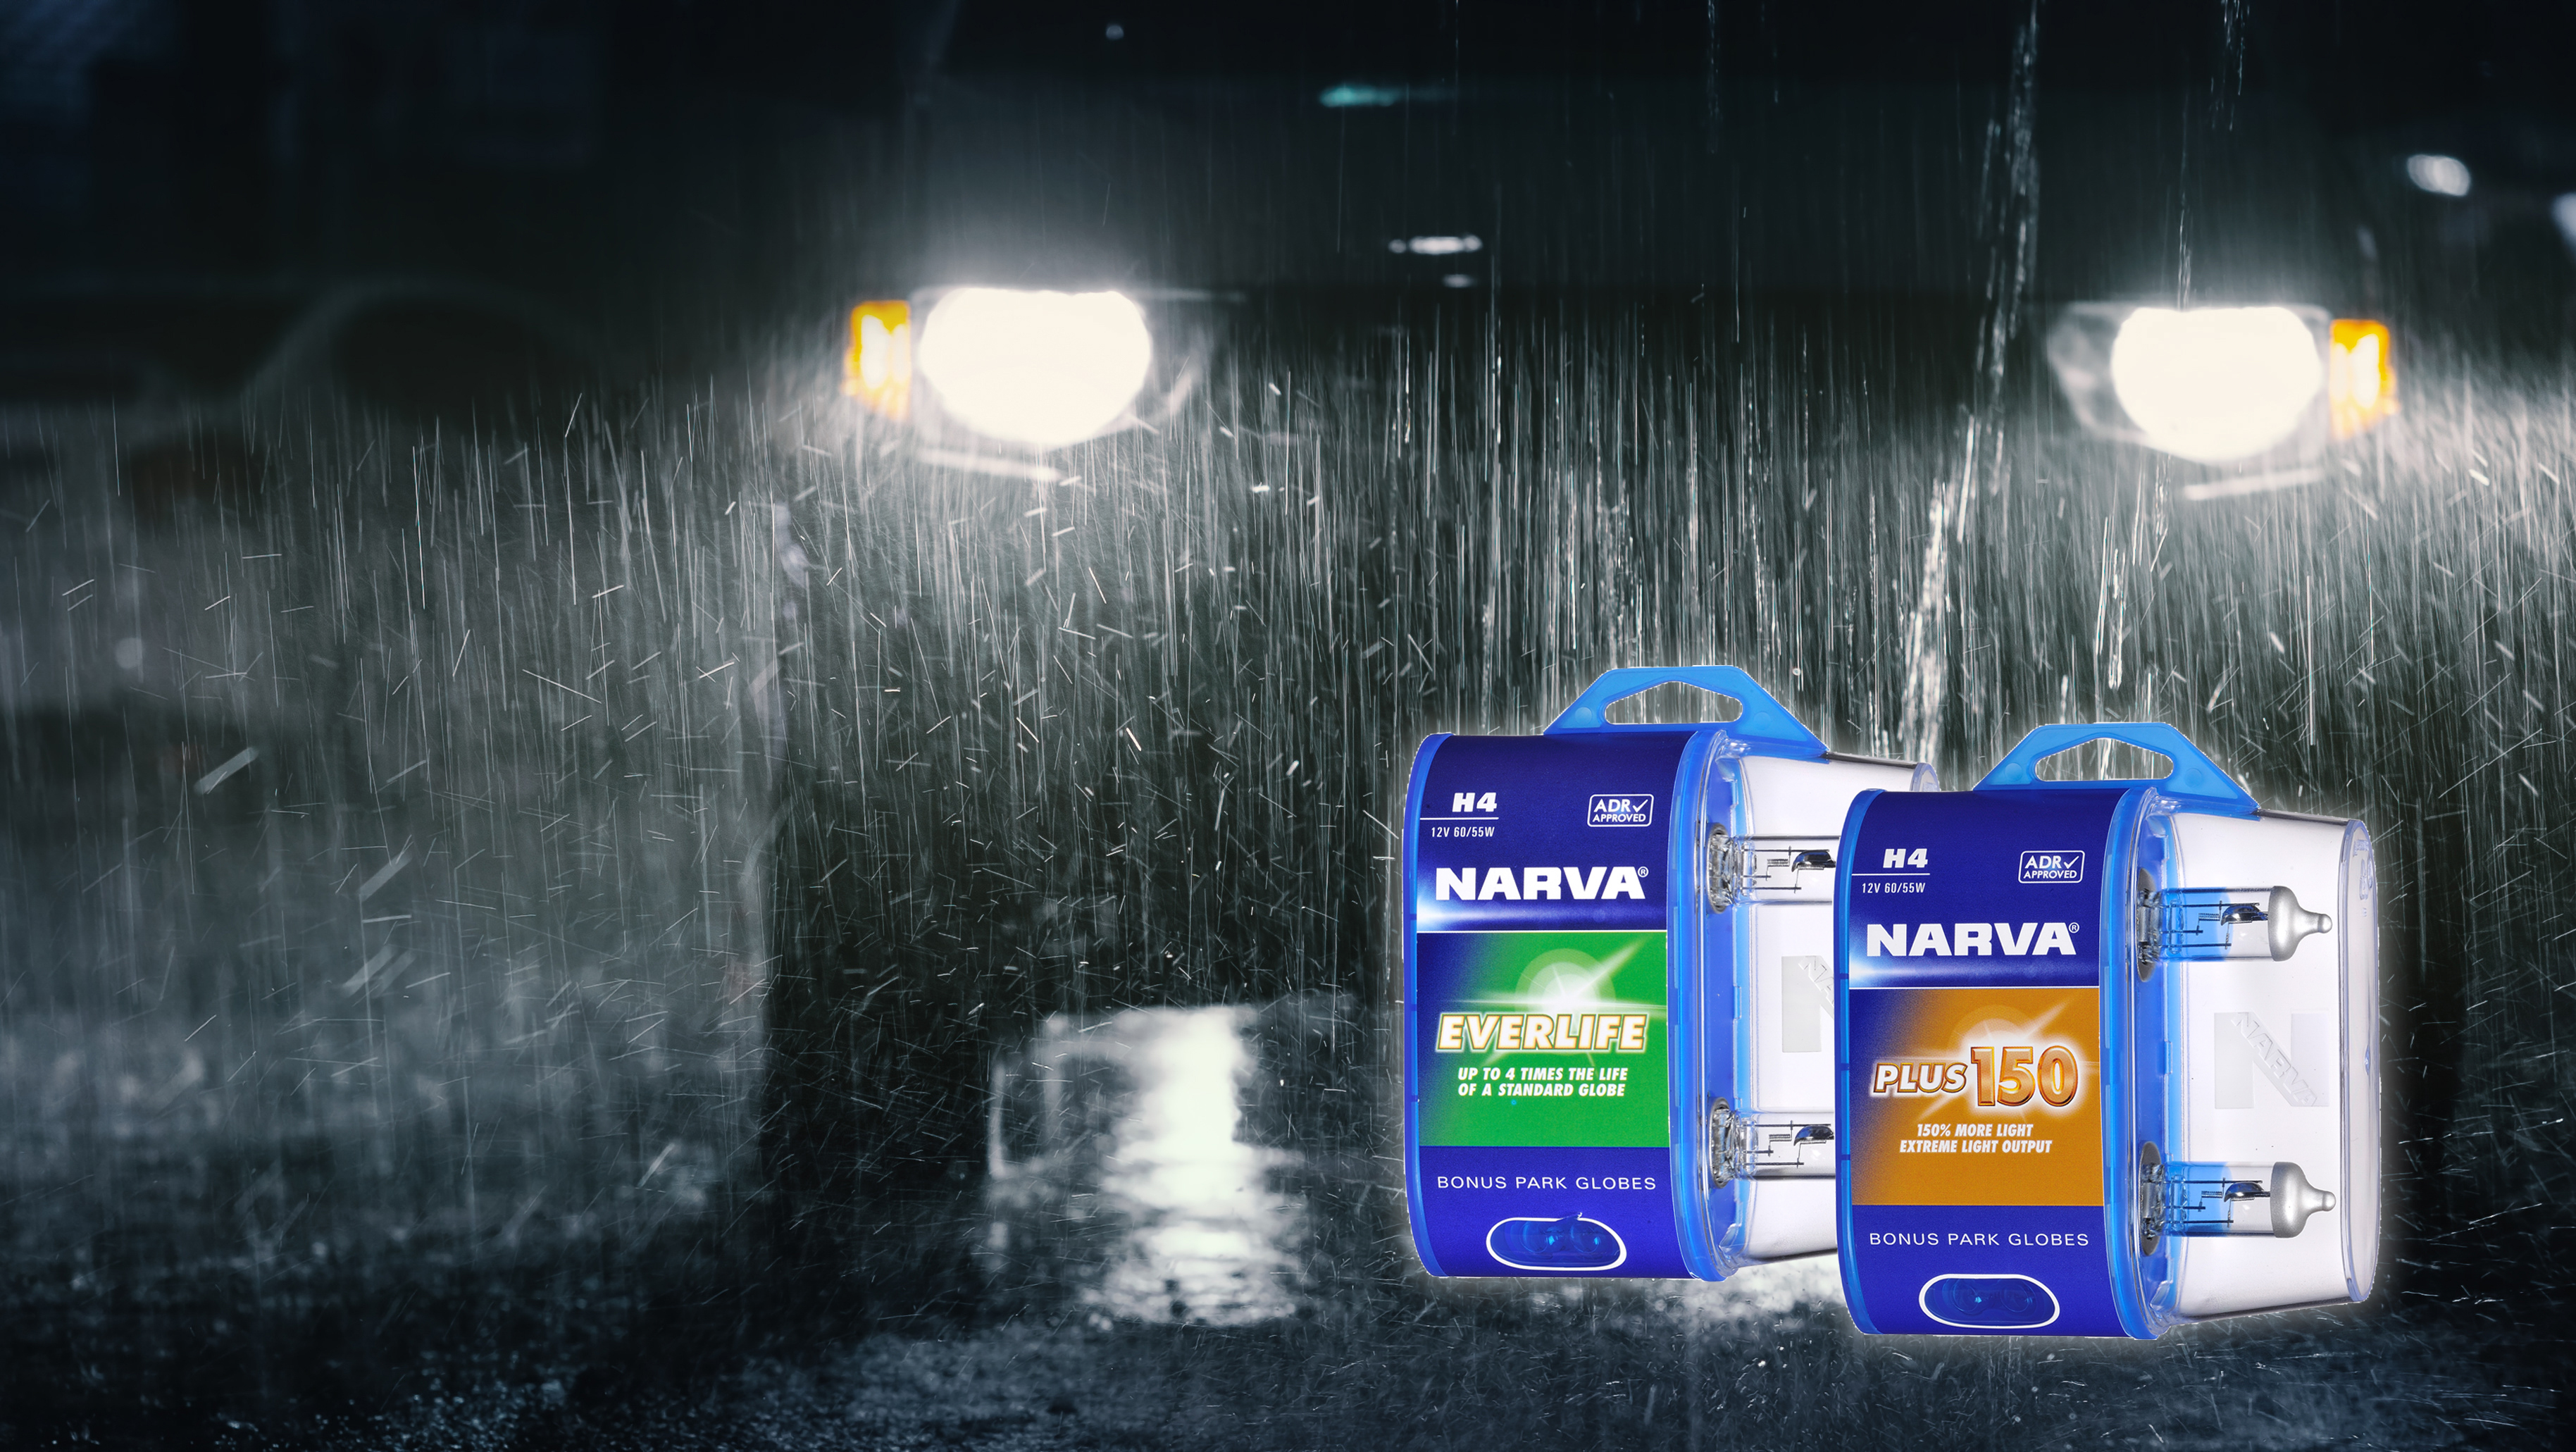 With many vehicles returning to our roads amidst an easing of COVID-19 restrictions, NARVA is urging motorists to not only check their vehicle lighting for blown globes, but also consider replacing or upgrading their headlight globes for improved visibility.